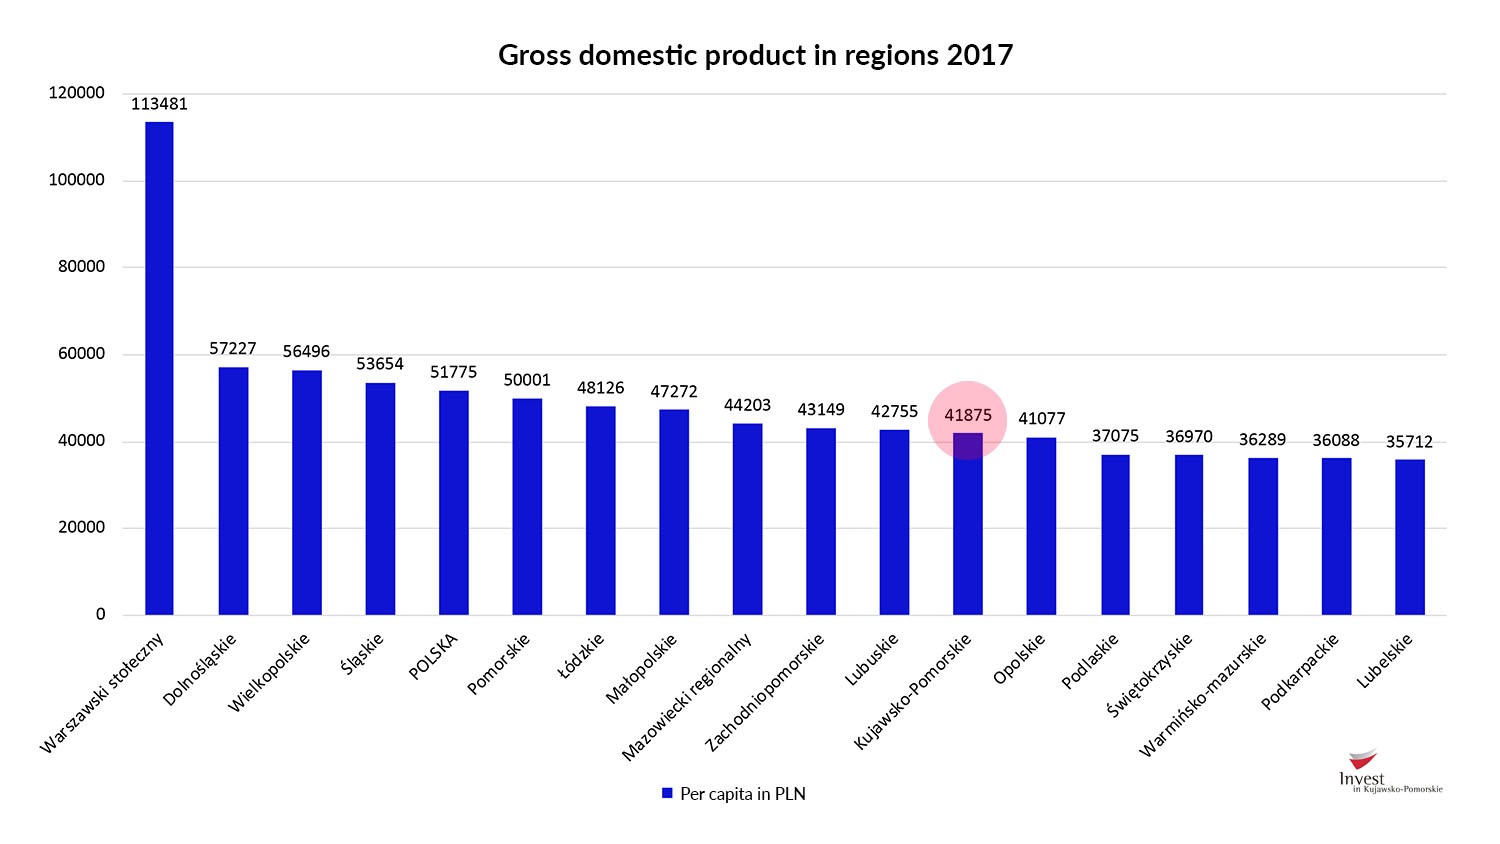 Gross domestic product per capita 2017